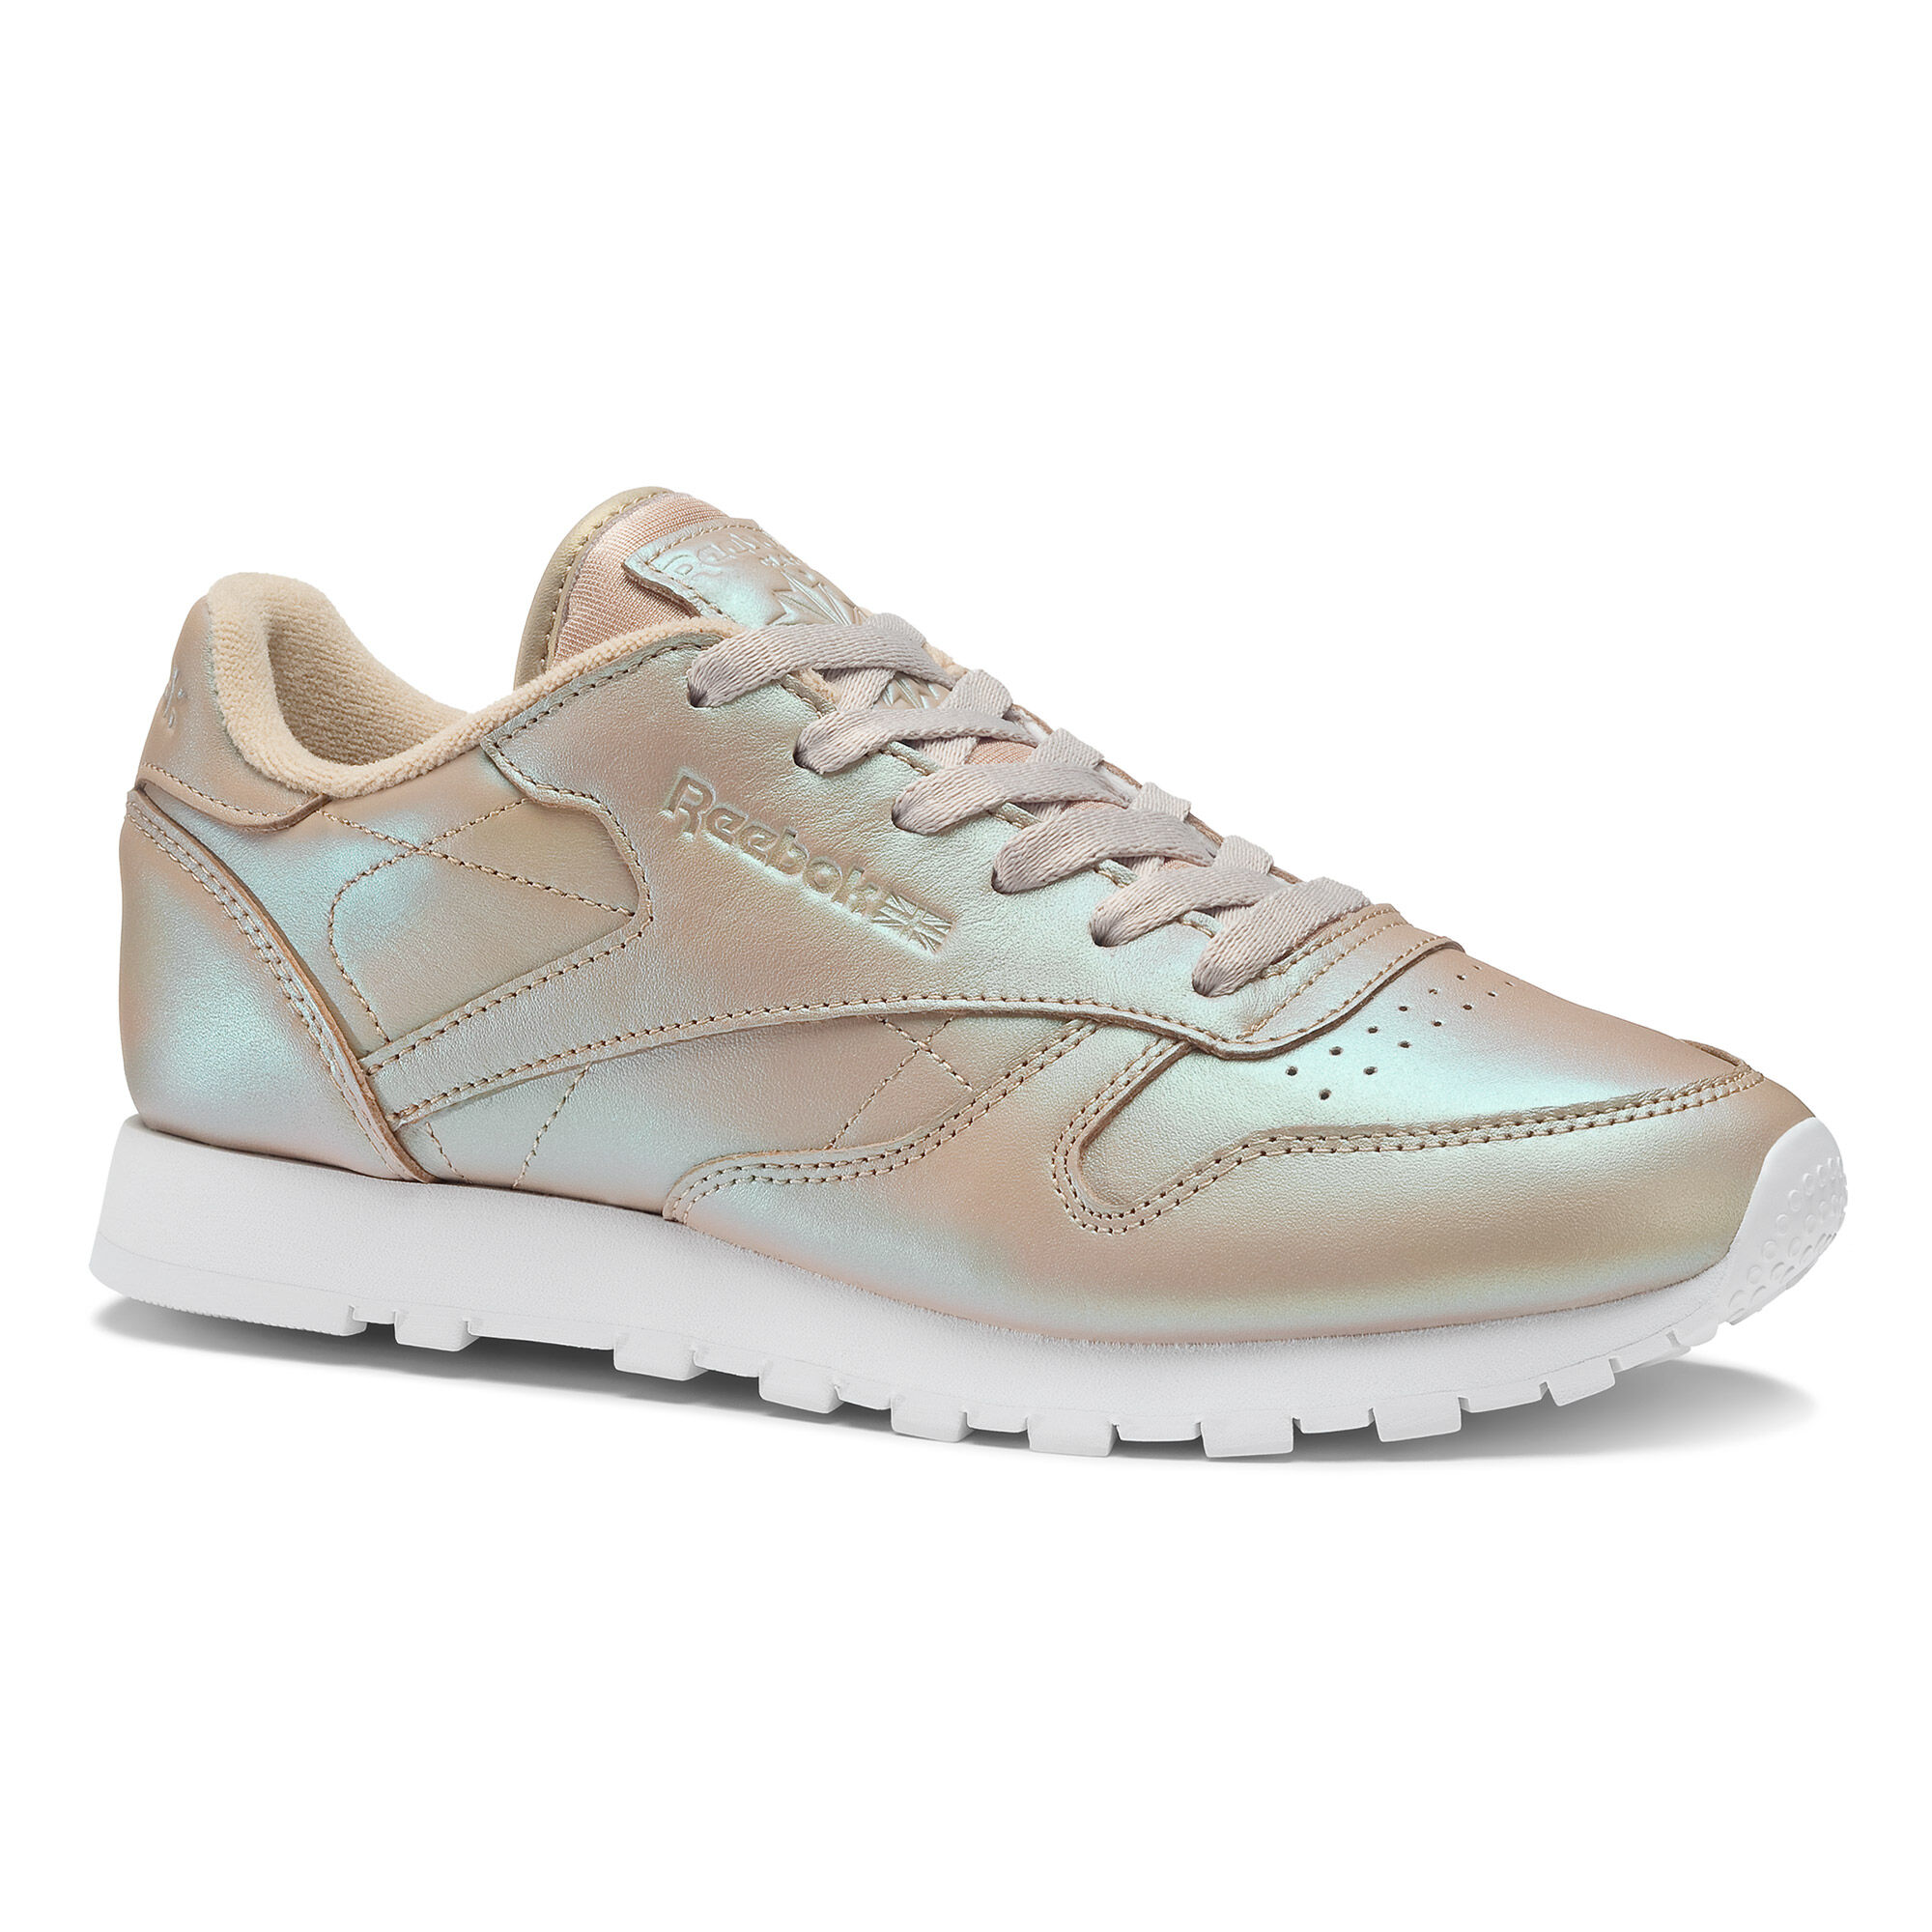 Reebok - Classic Leather Pearlised Beige/Champagne/White BD4309